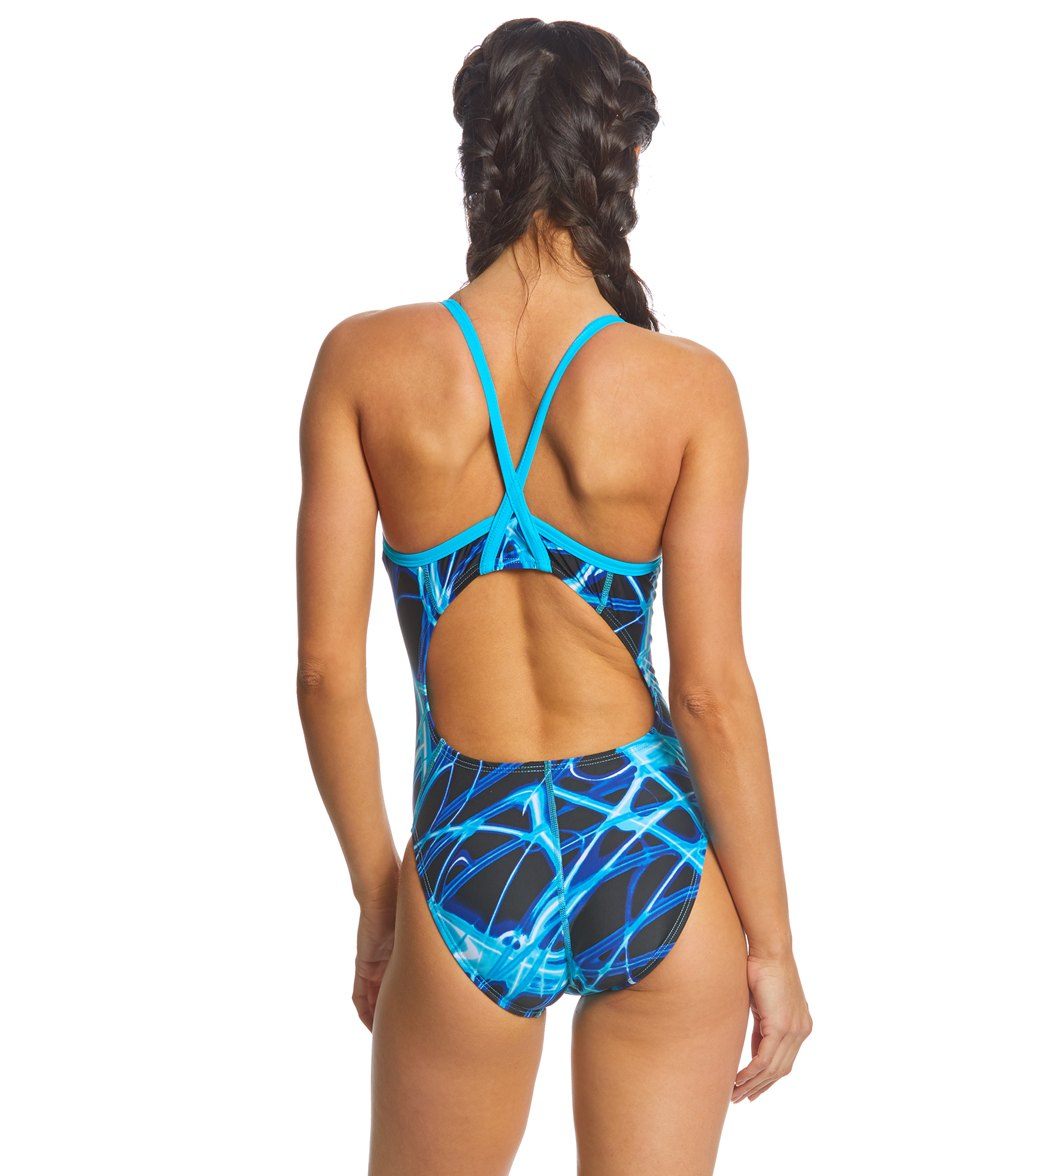 f17027412 SwimOutlet Exclusive Waterpro Lightning Thin Strap One Piece Swimsuit